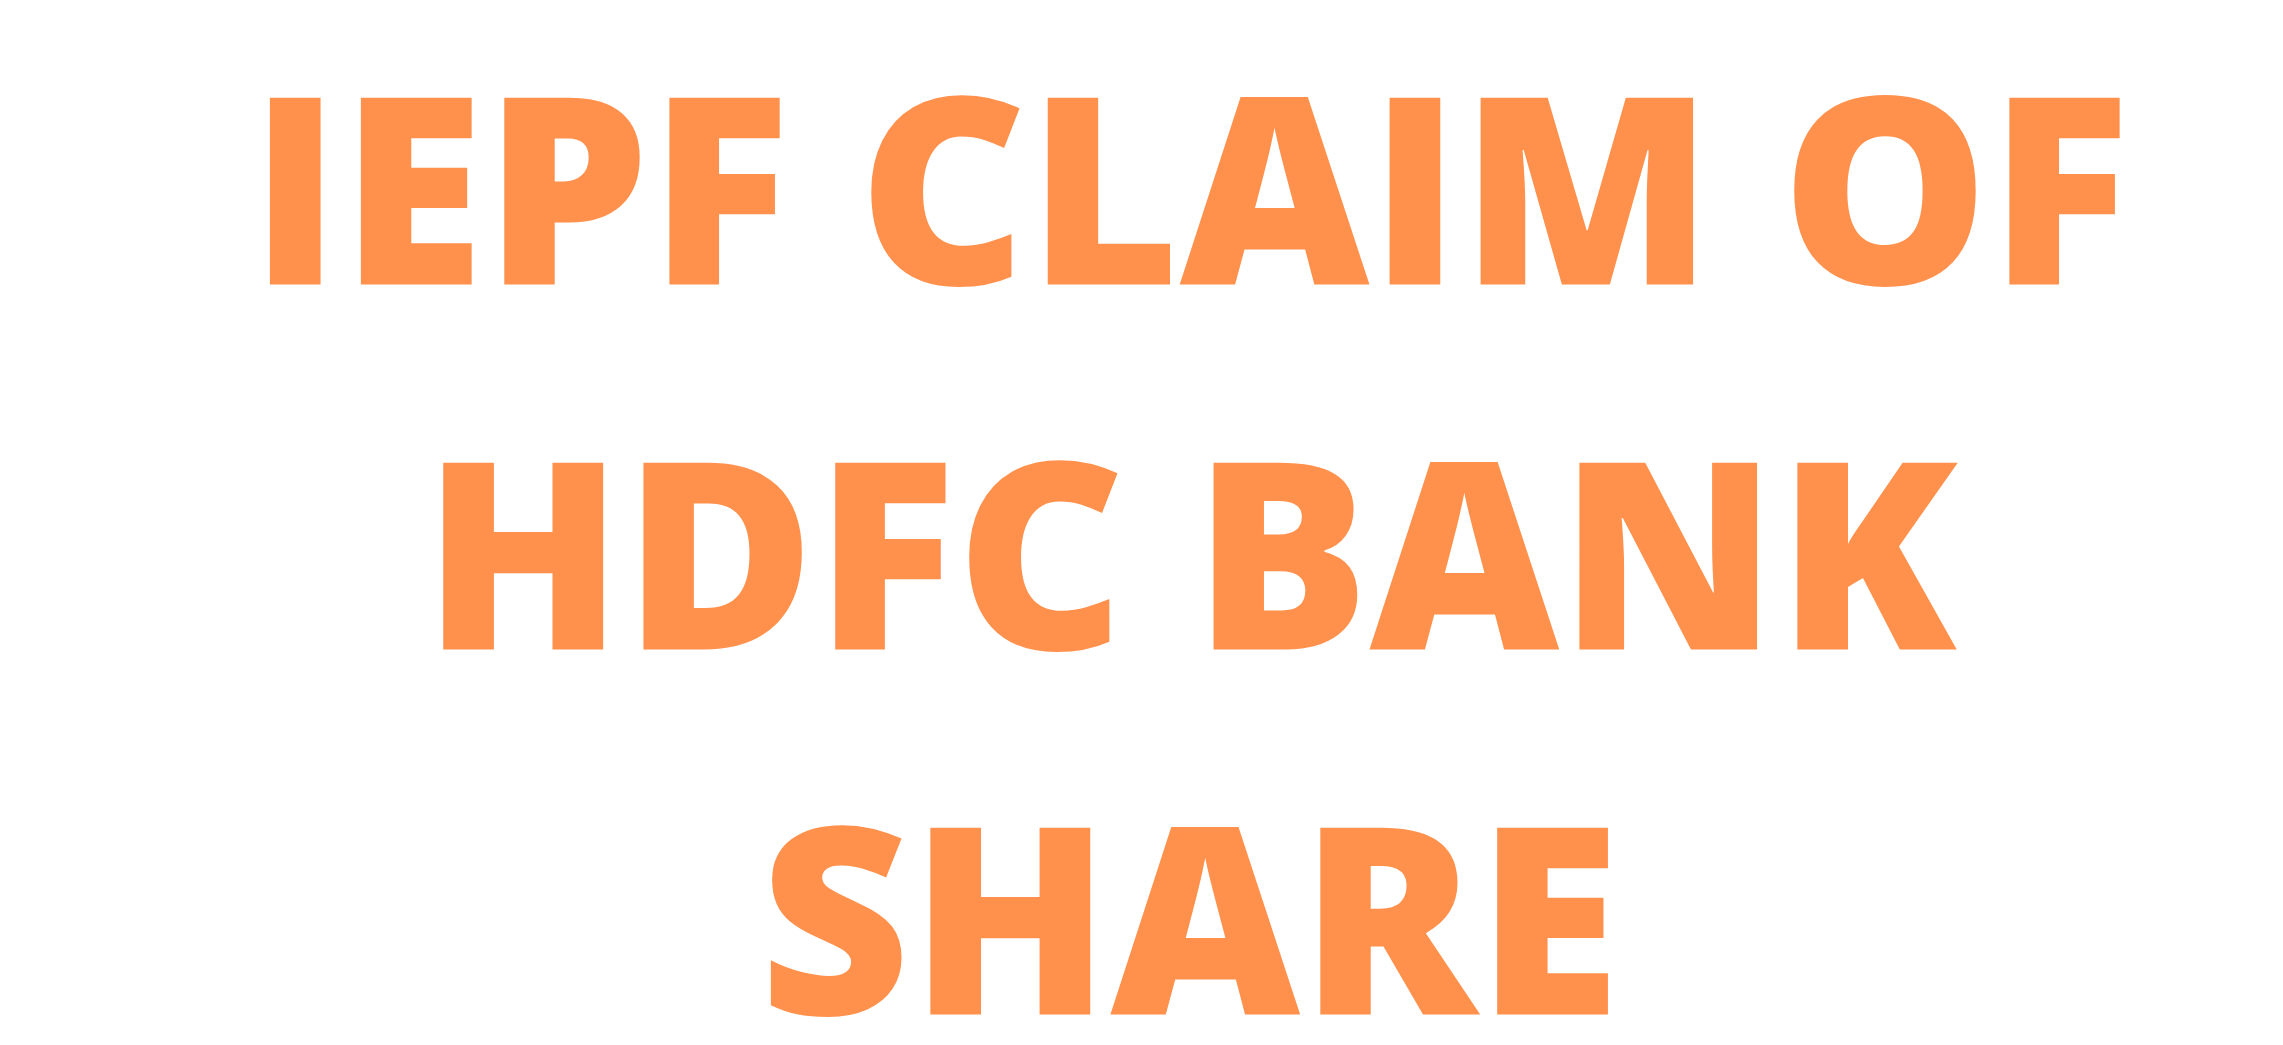 All about IEPF claim of HDFC BANK shares / unclaimed dividend of HDFC BANK shares